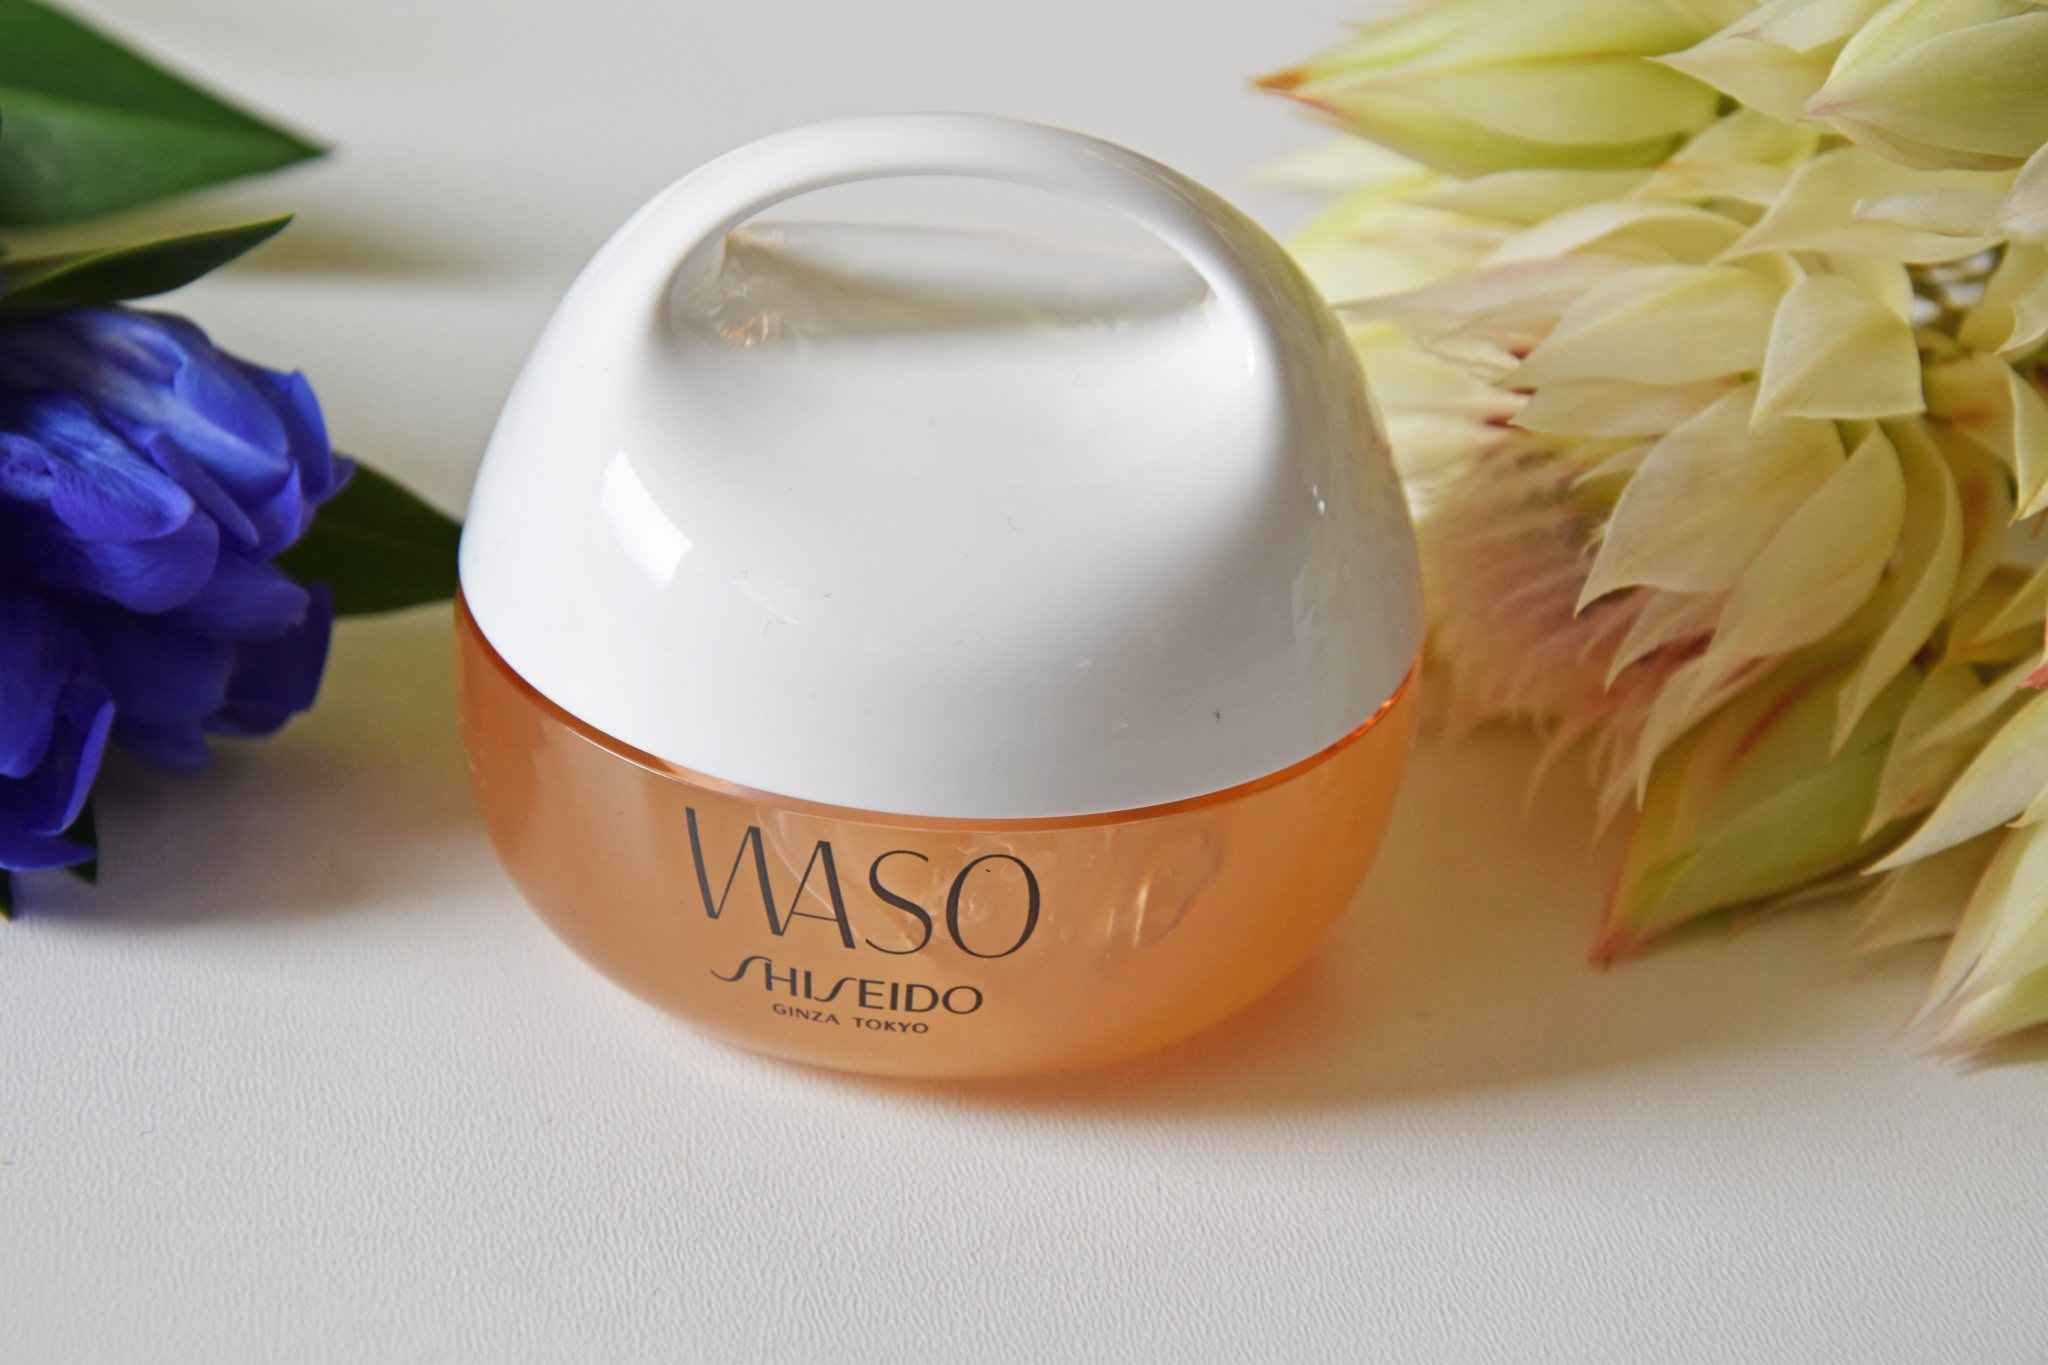 Shiseido - WASO: Clear Mega-hydrating Cream